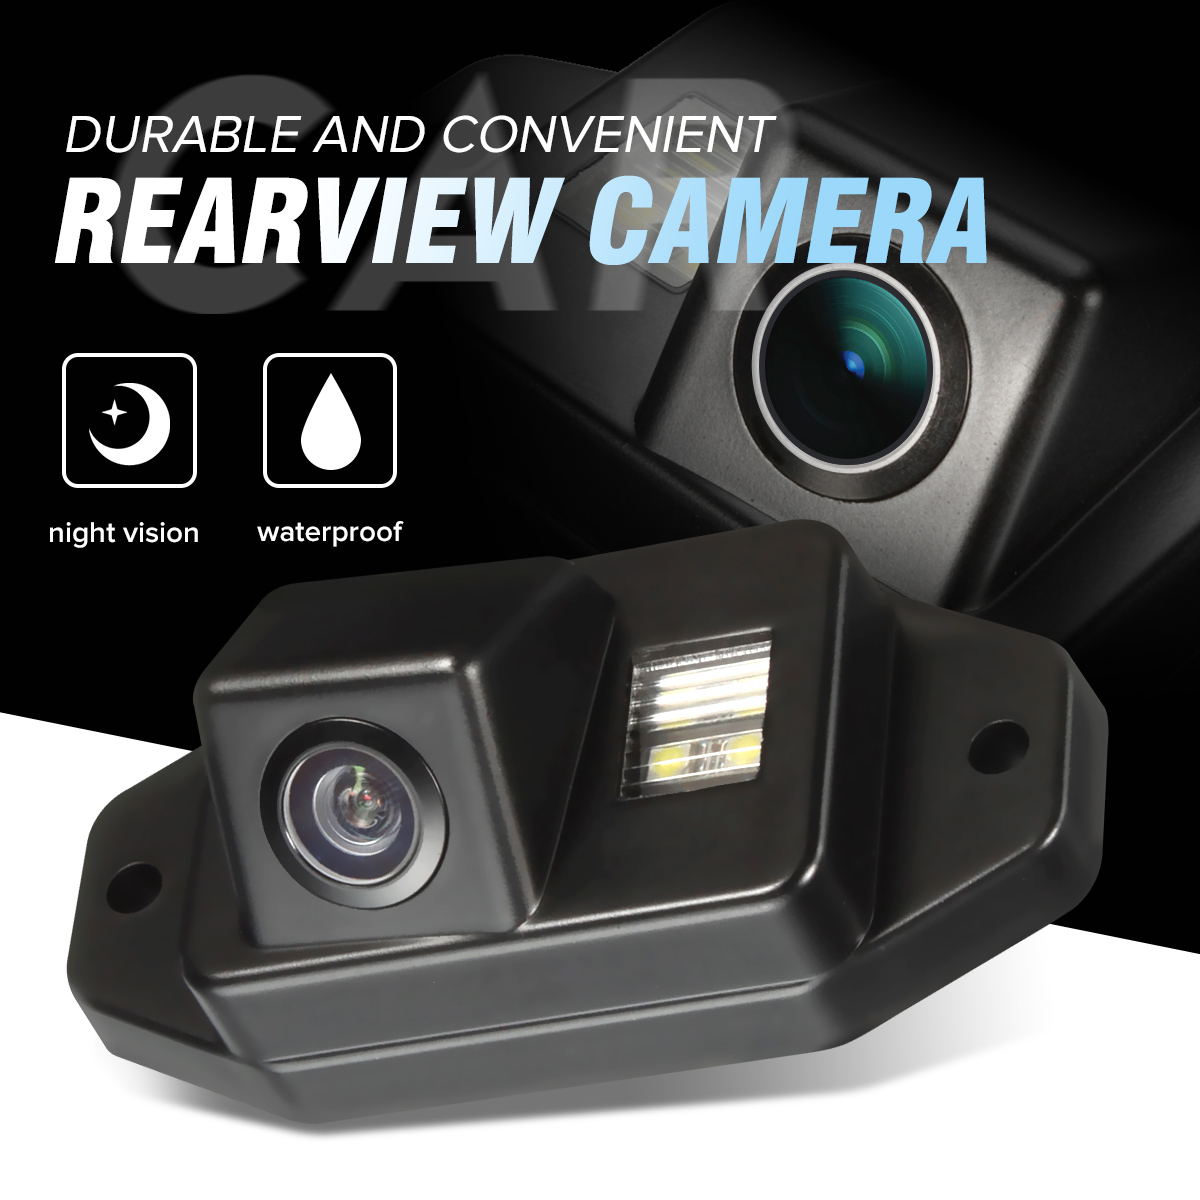 HD CCD Car Rear View Camera Back Up Reverse Parking WaterProof For Toyota Prado Land Cruiser 120 2002-2009 Prado 2700 4000